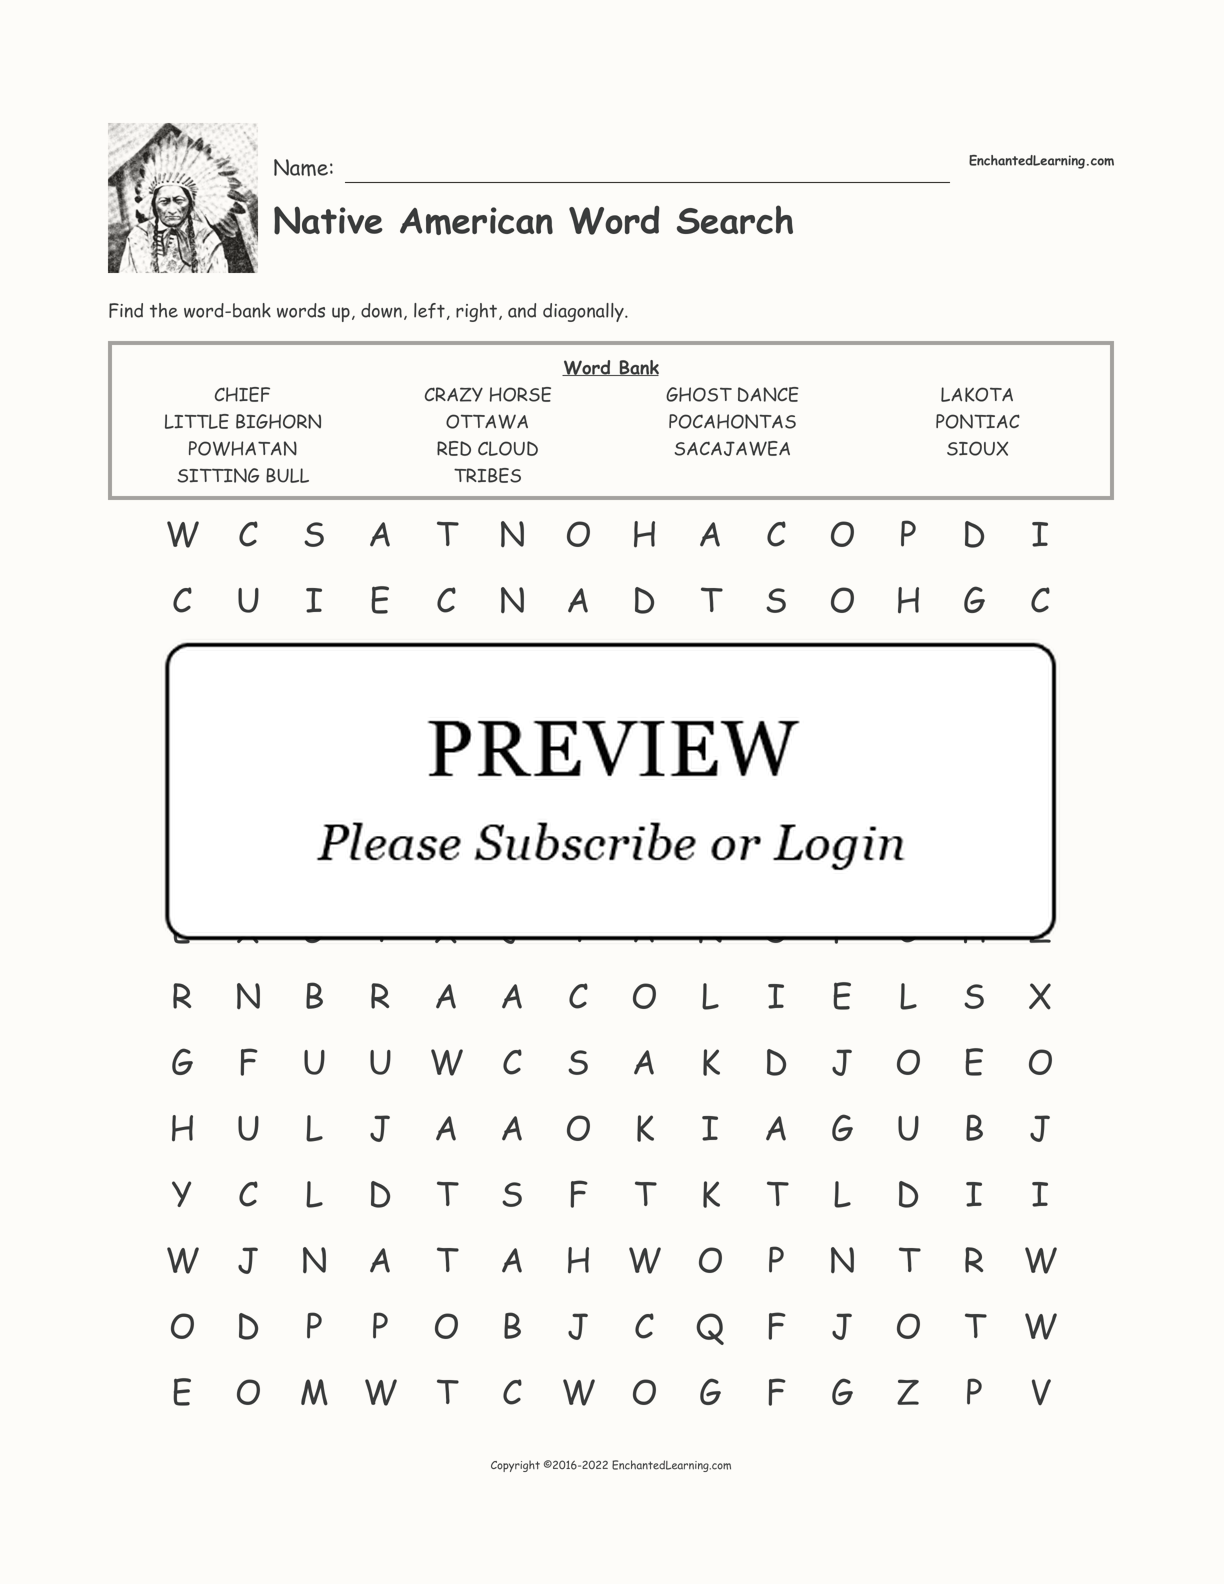 Native American Word Search interactive worksheet page 1